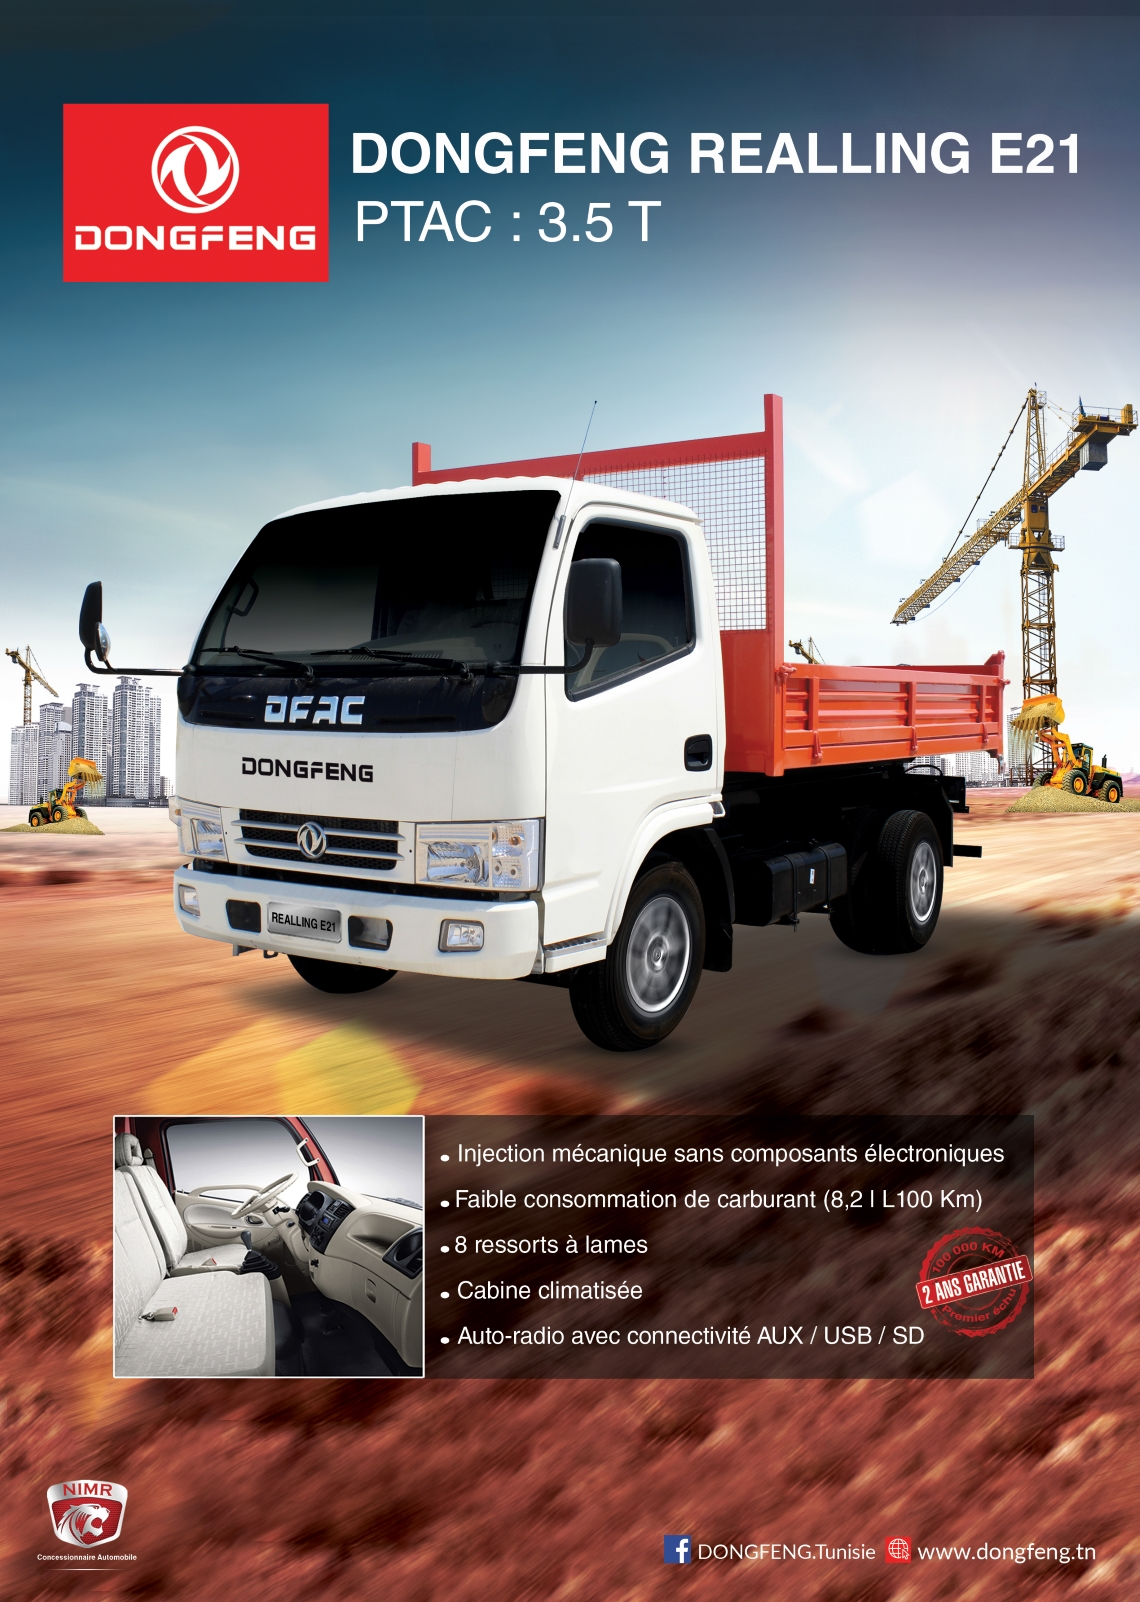 Prix camion Dongfeng tourisme Realling E21 châssis court neuf Tunisie 1